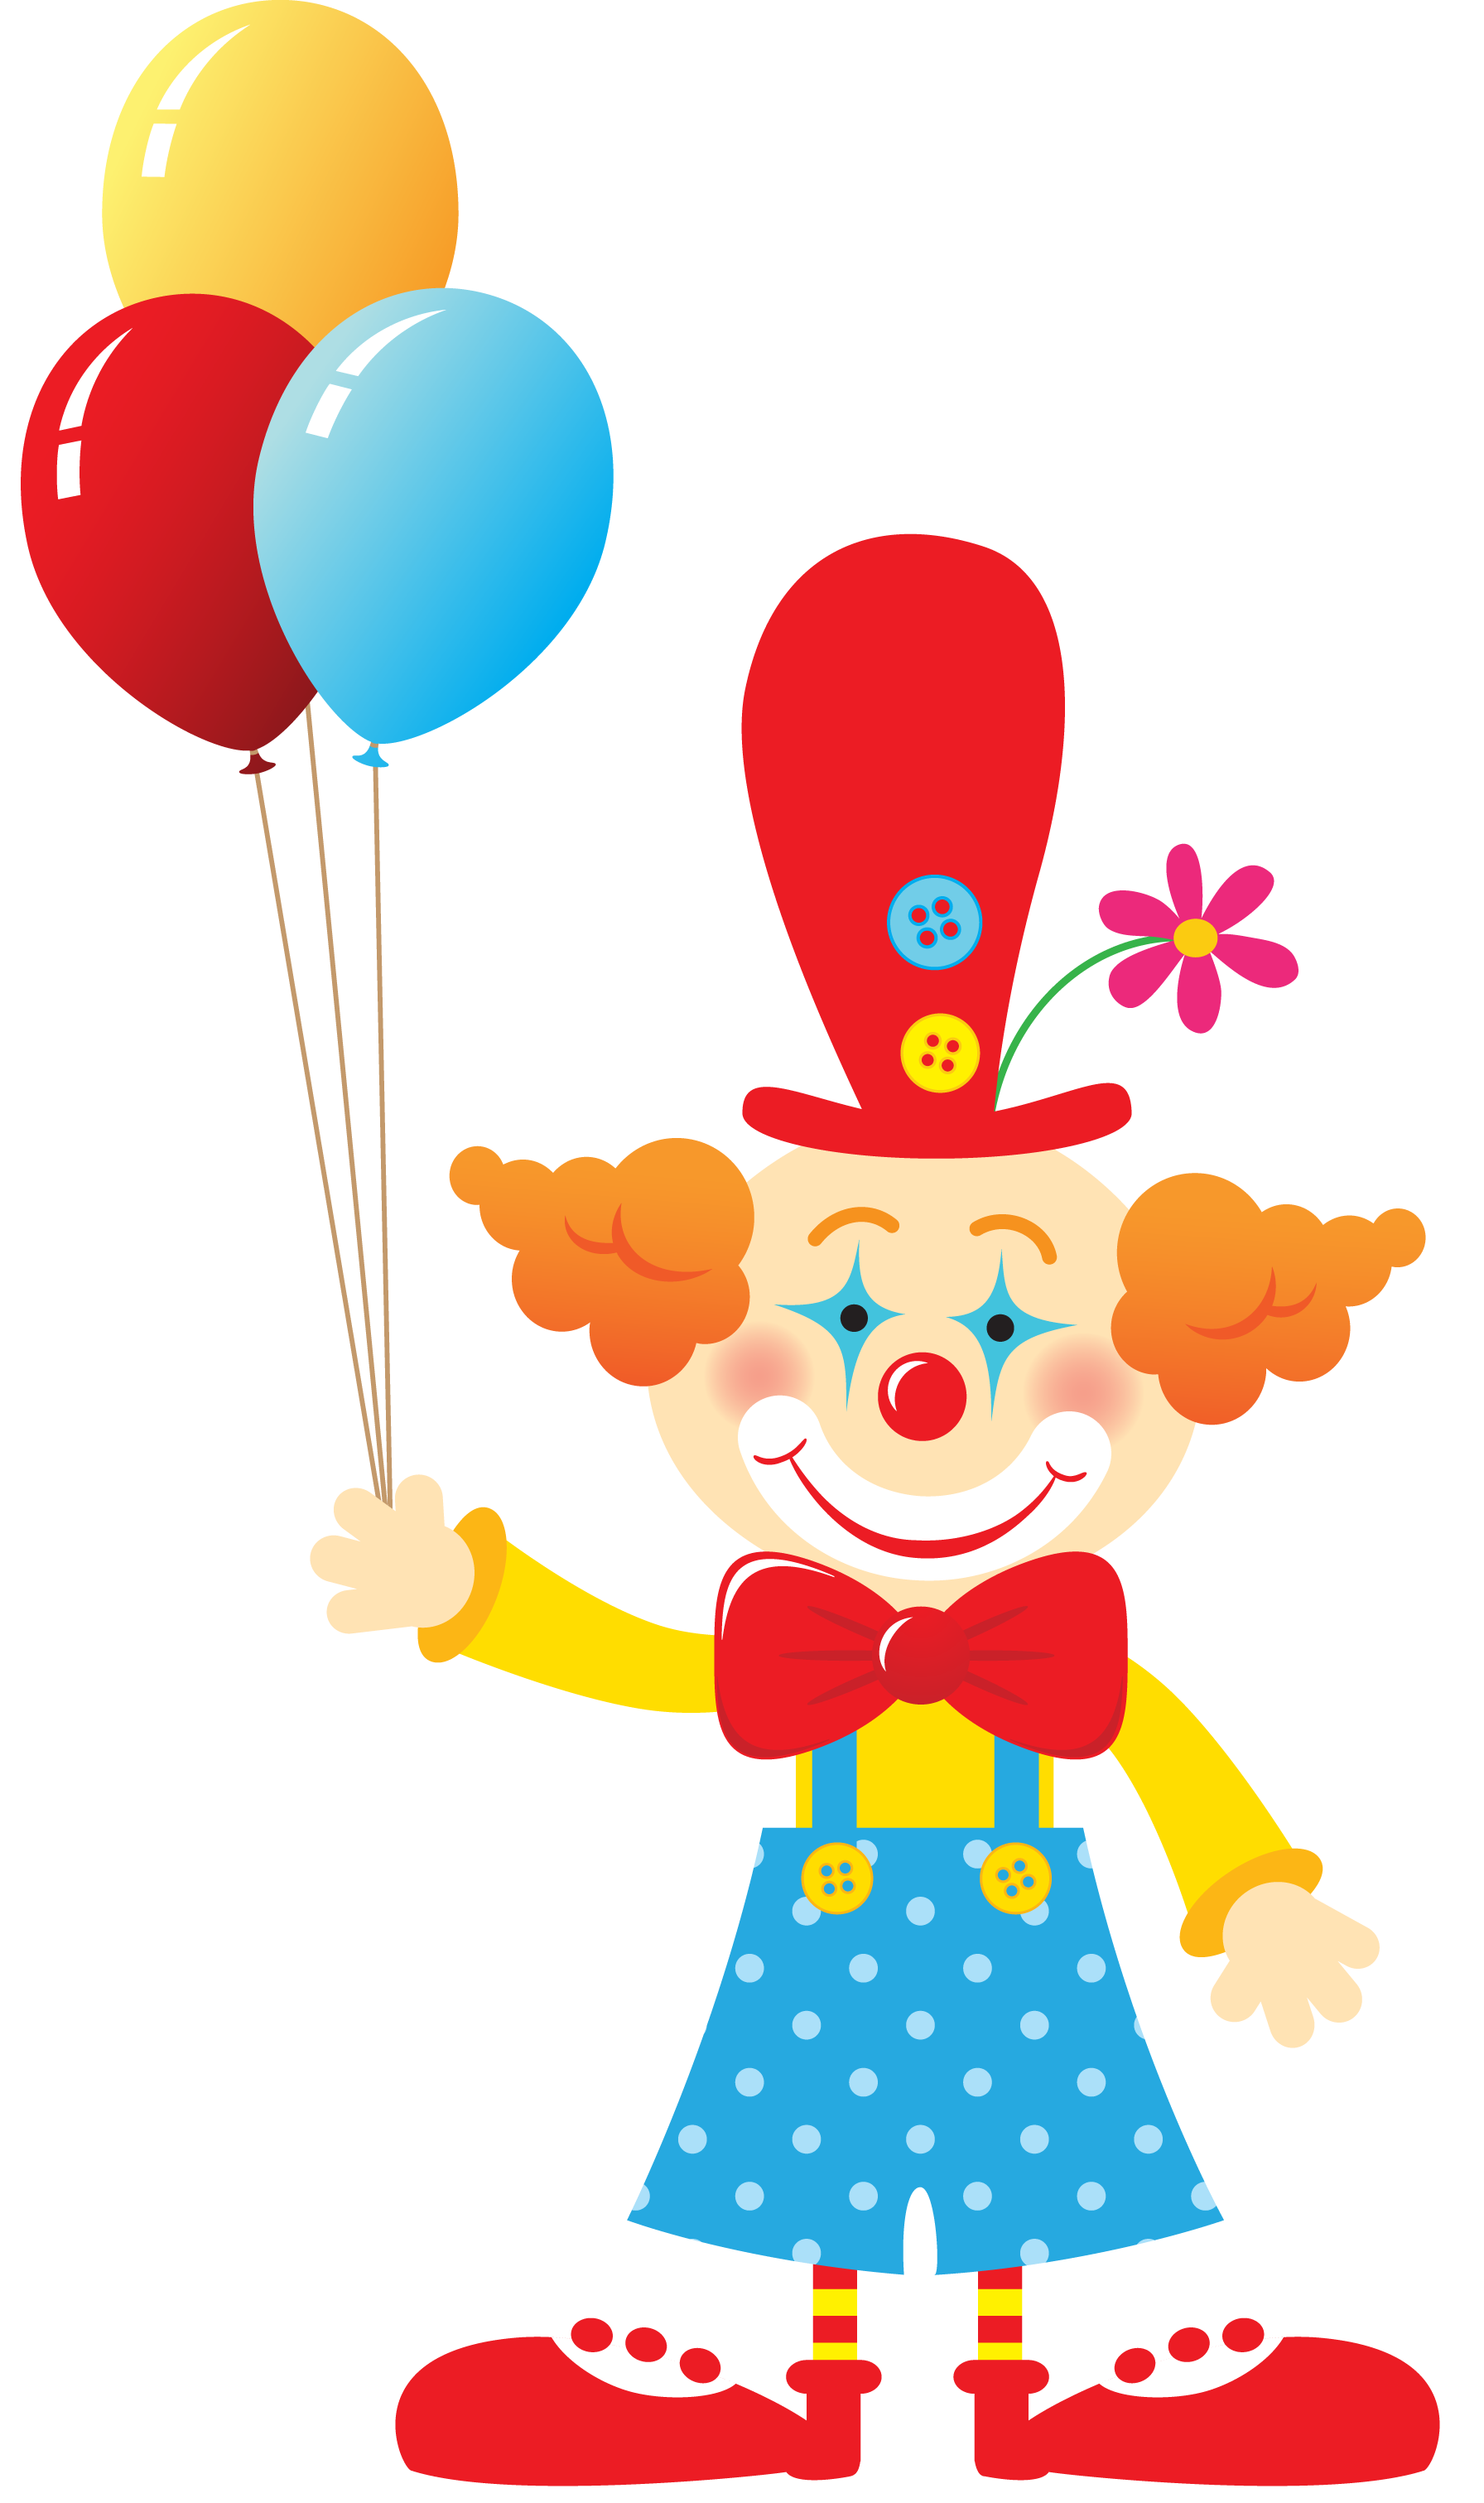 Happy clipart clown. Photo by danimfalcao minus